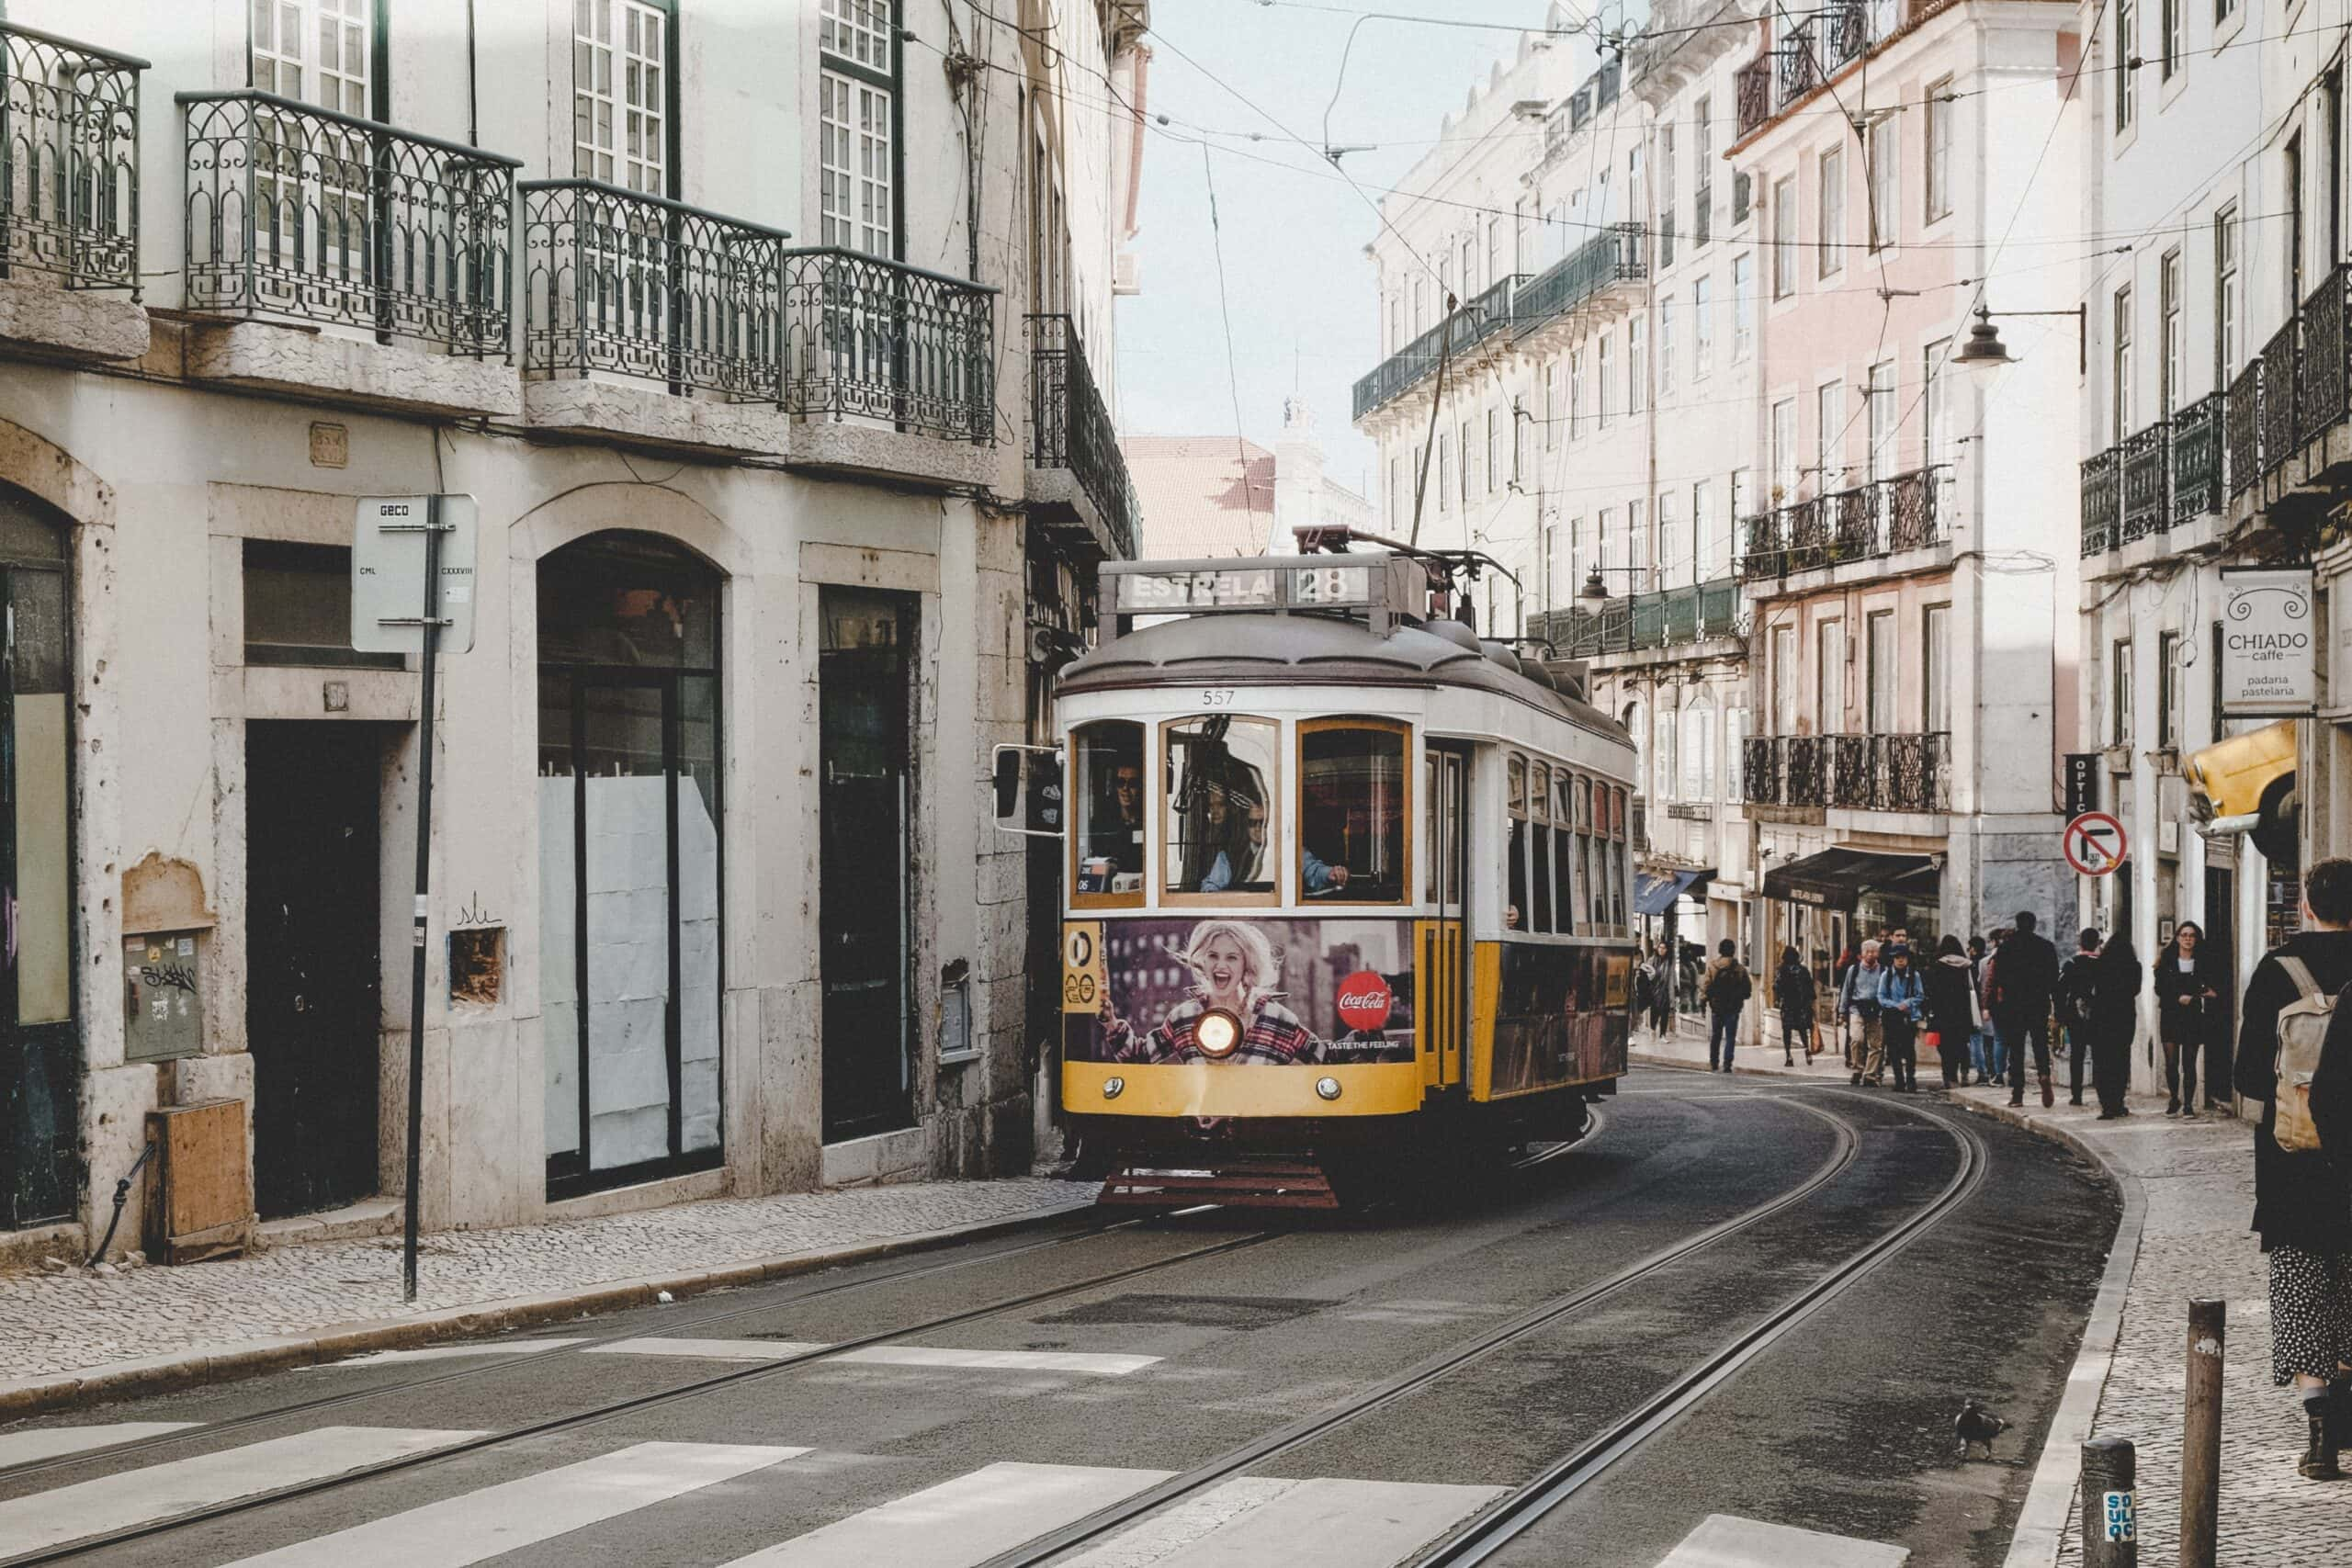 25 Bucket List Places To Visit In Portugal For The Most Epic Trip Ever